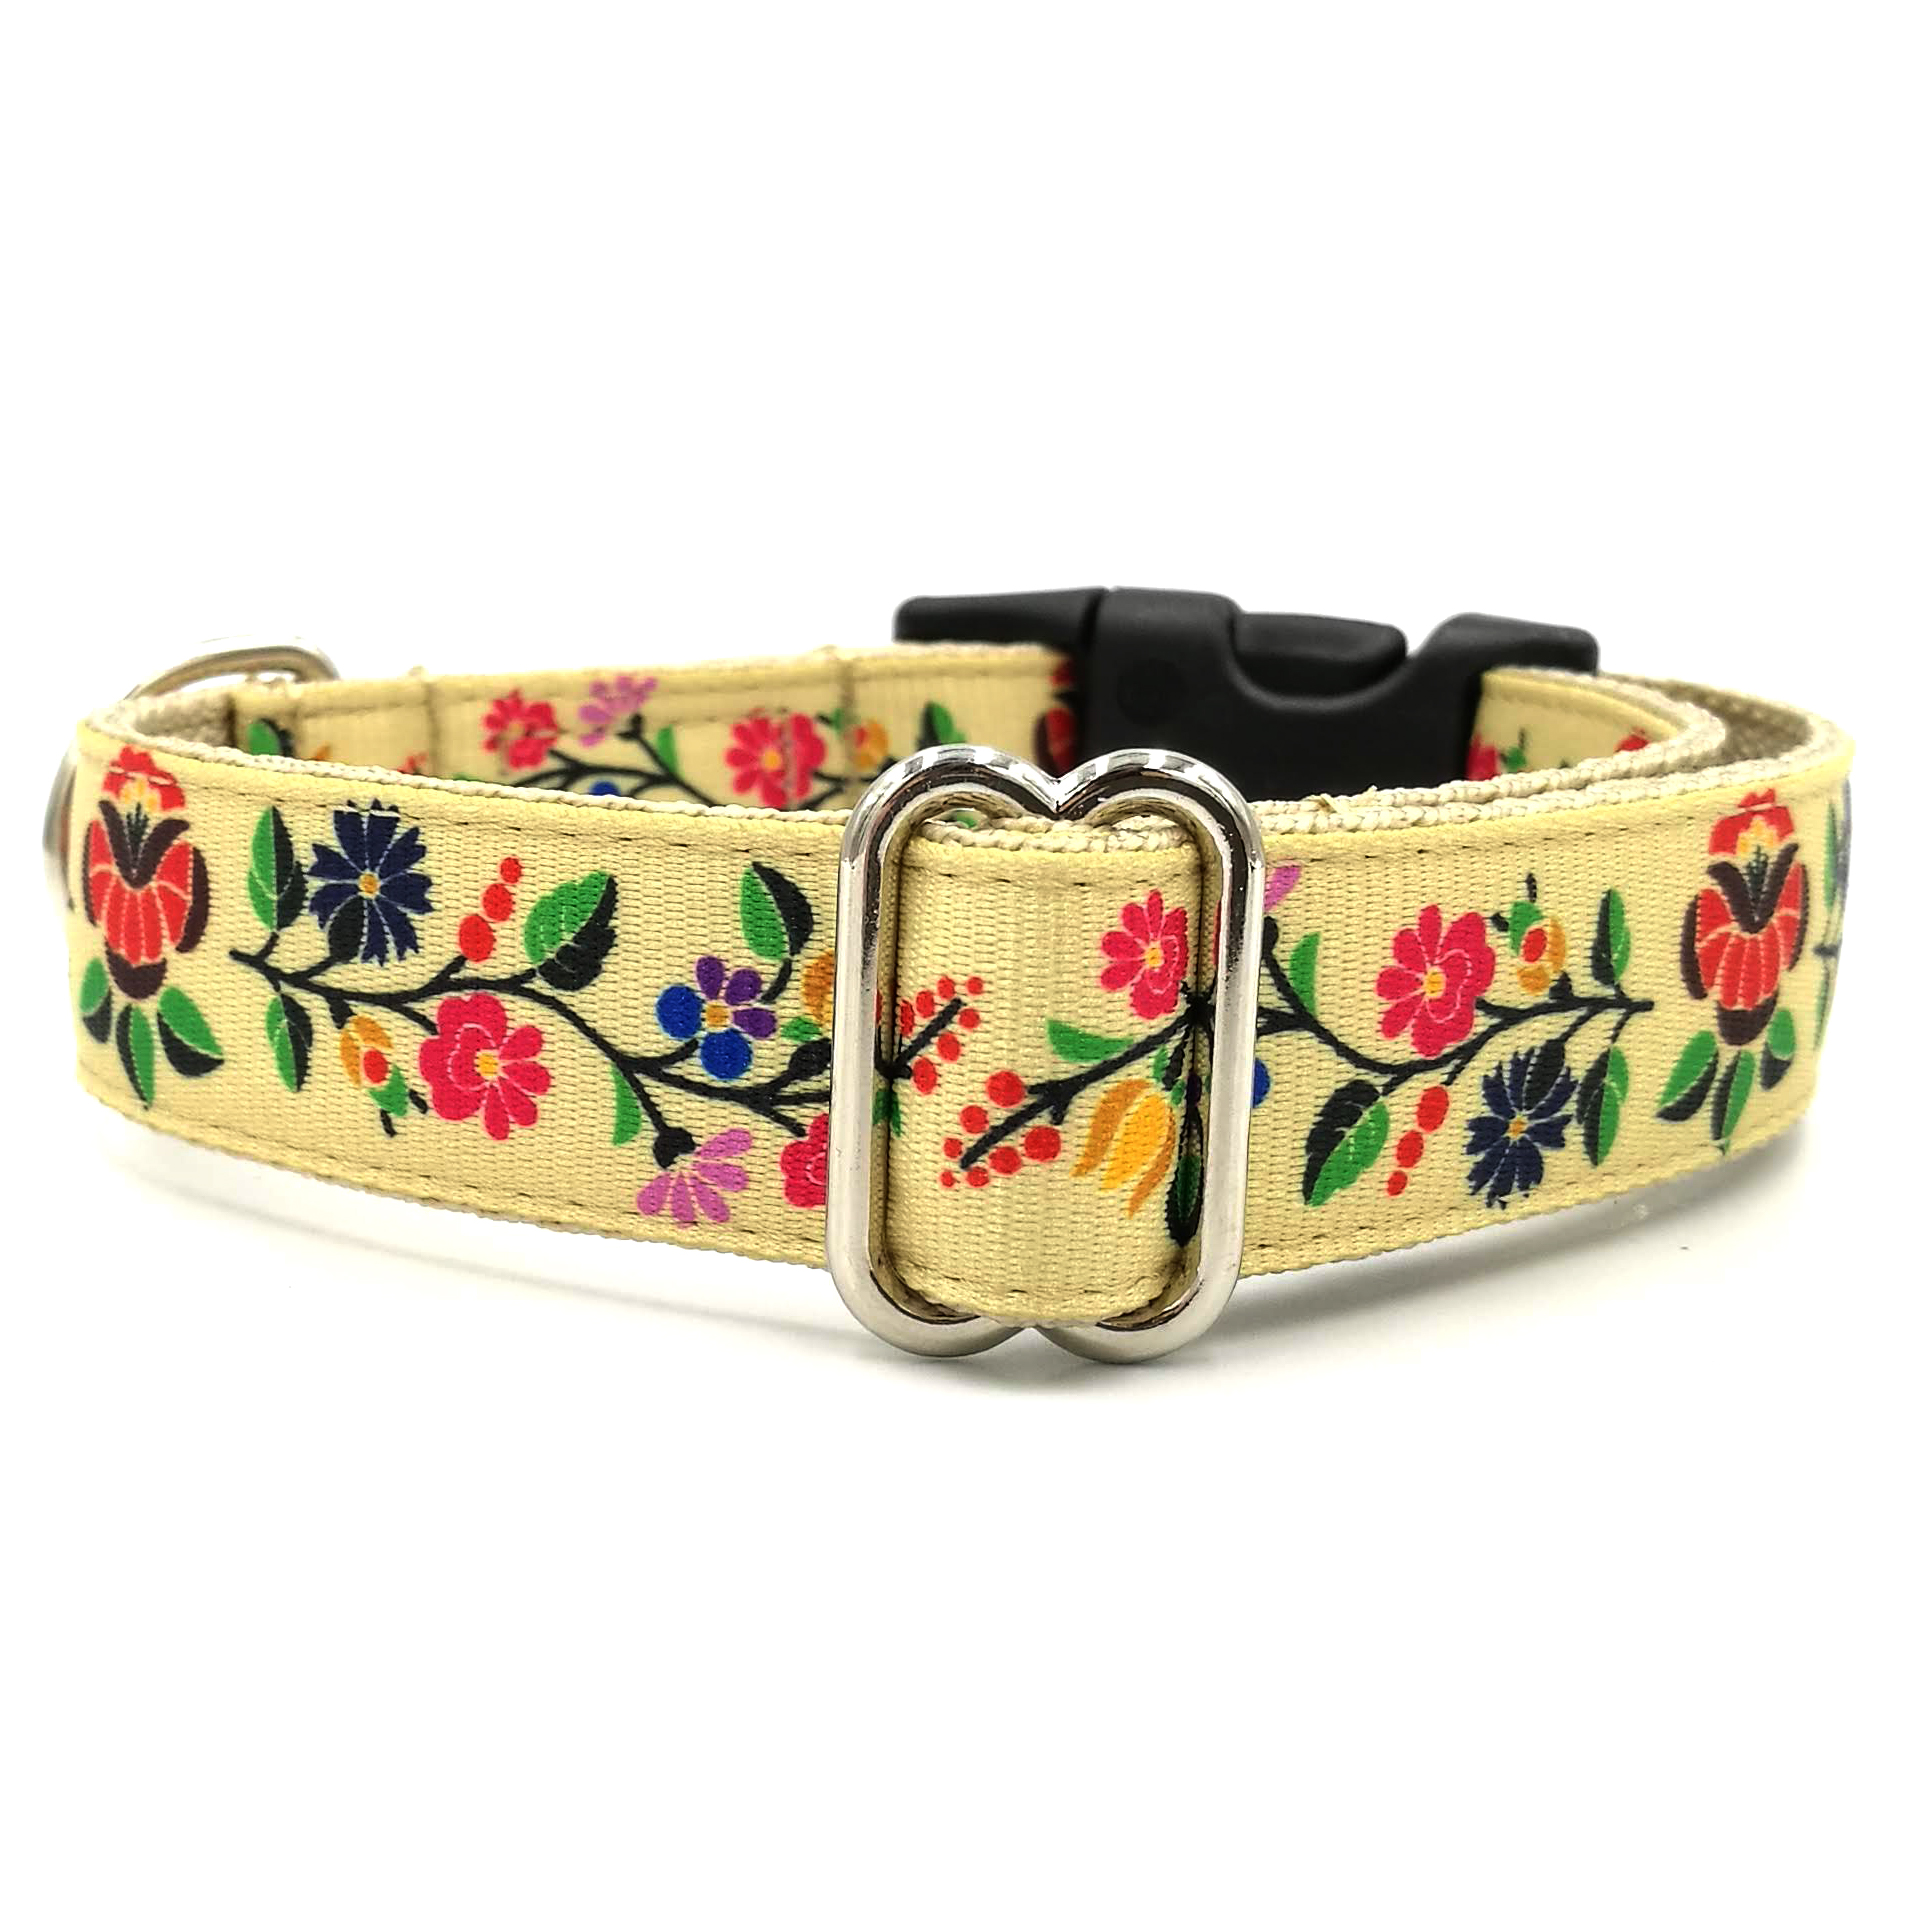 Matyo dog collar